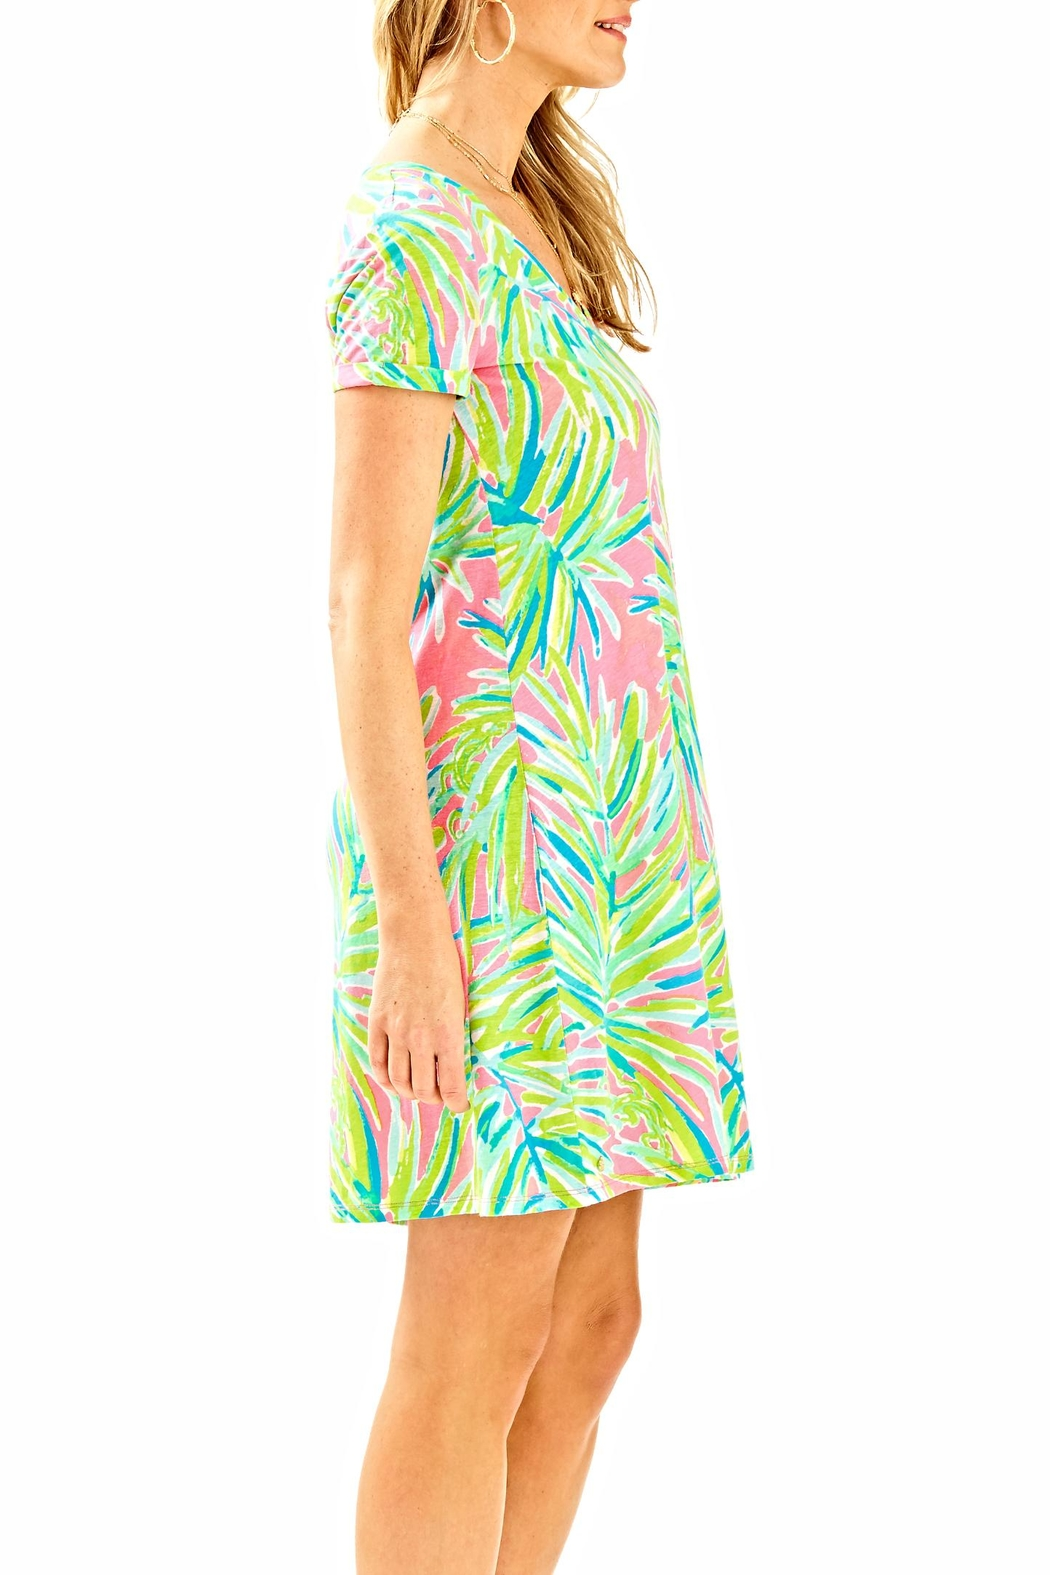 Lilly Pulitzer Short-Sleeve Dress - Front Full Image